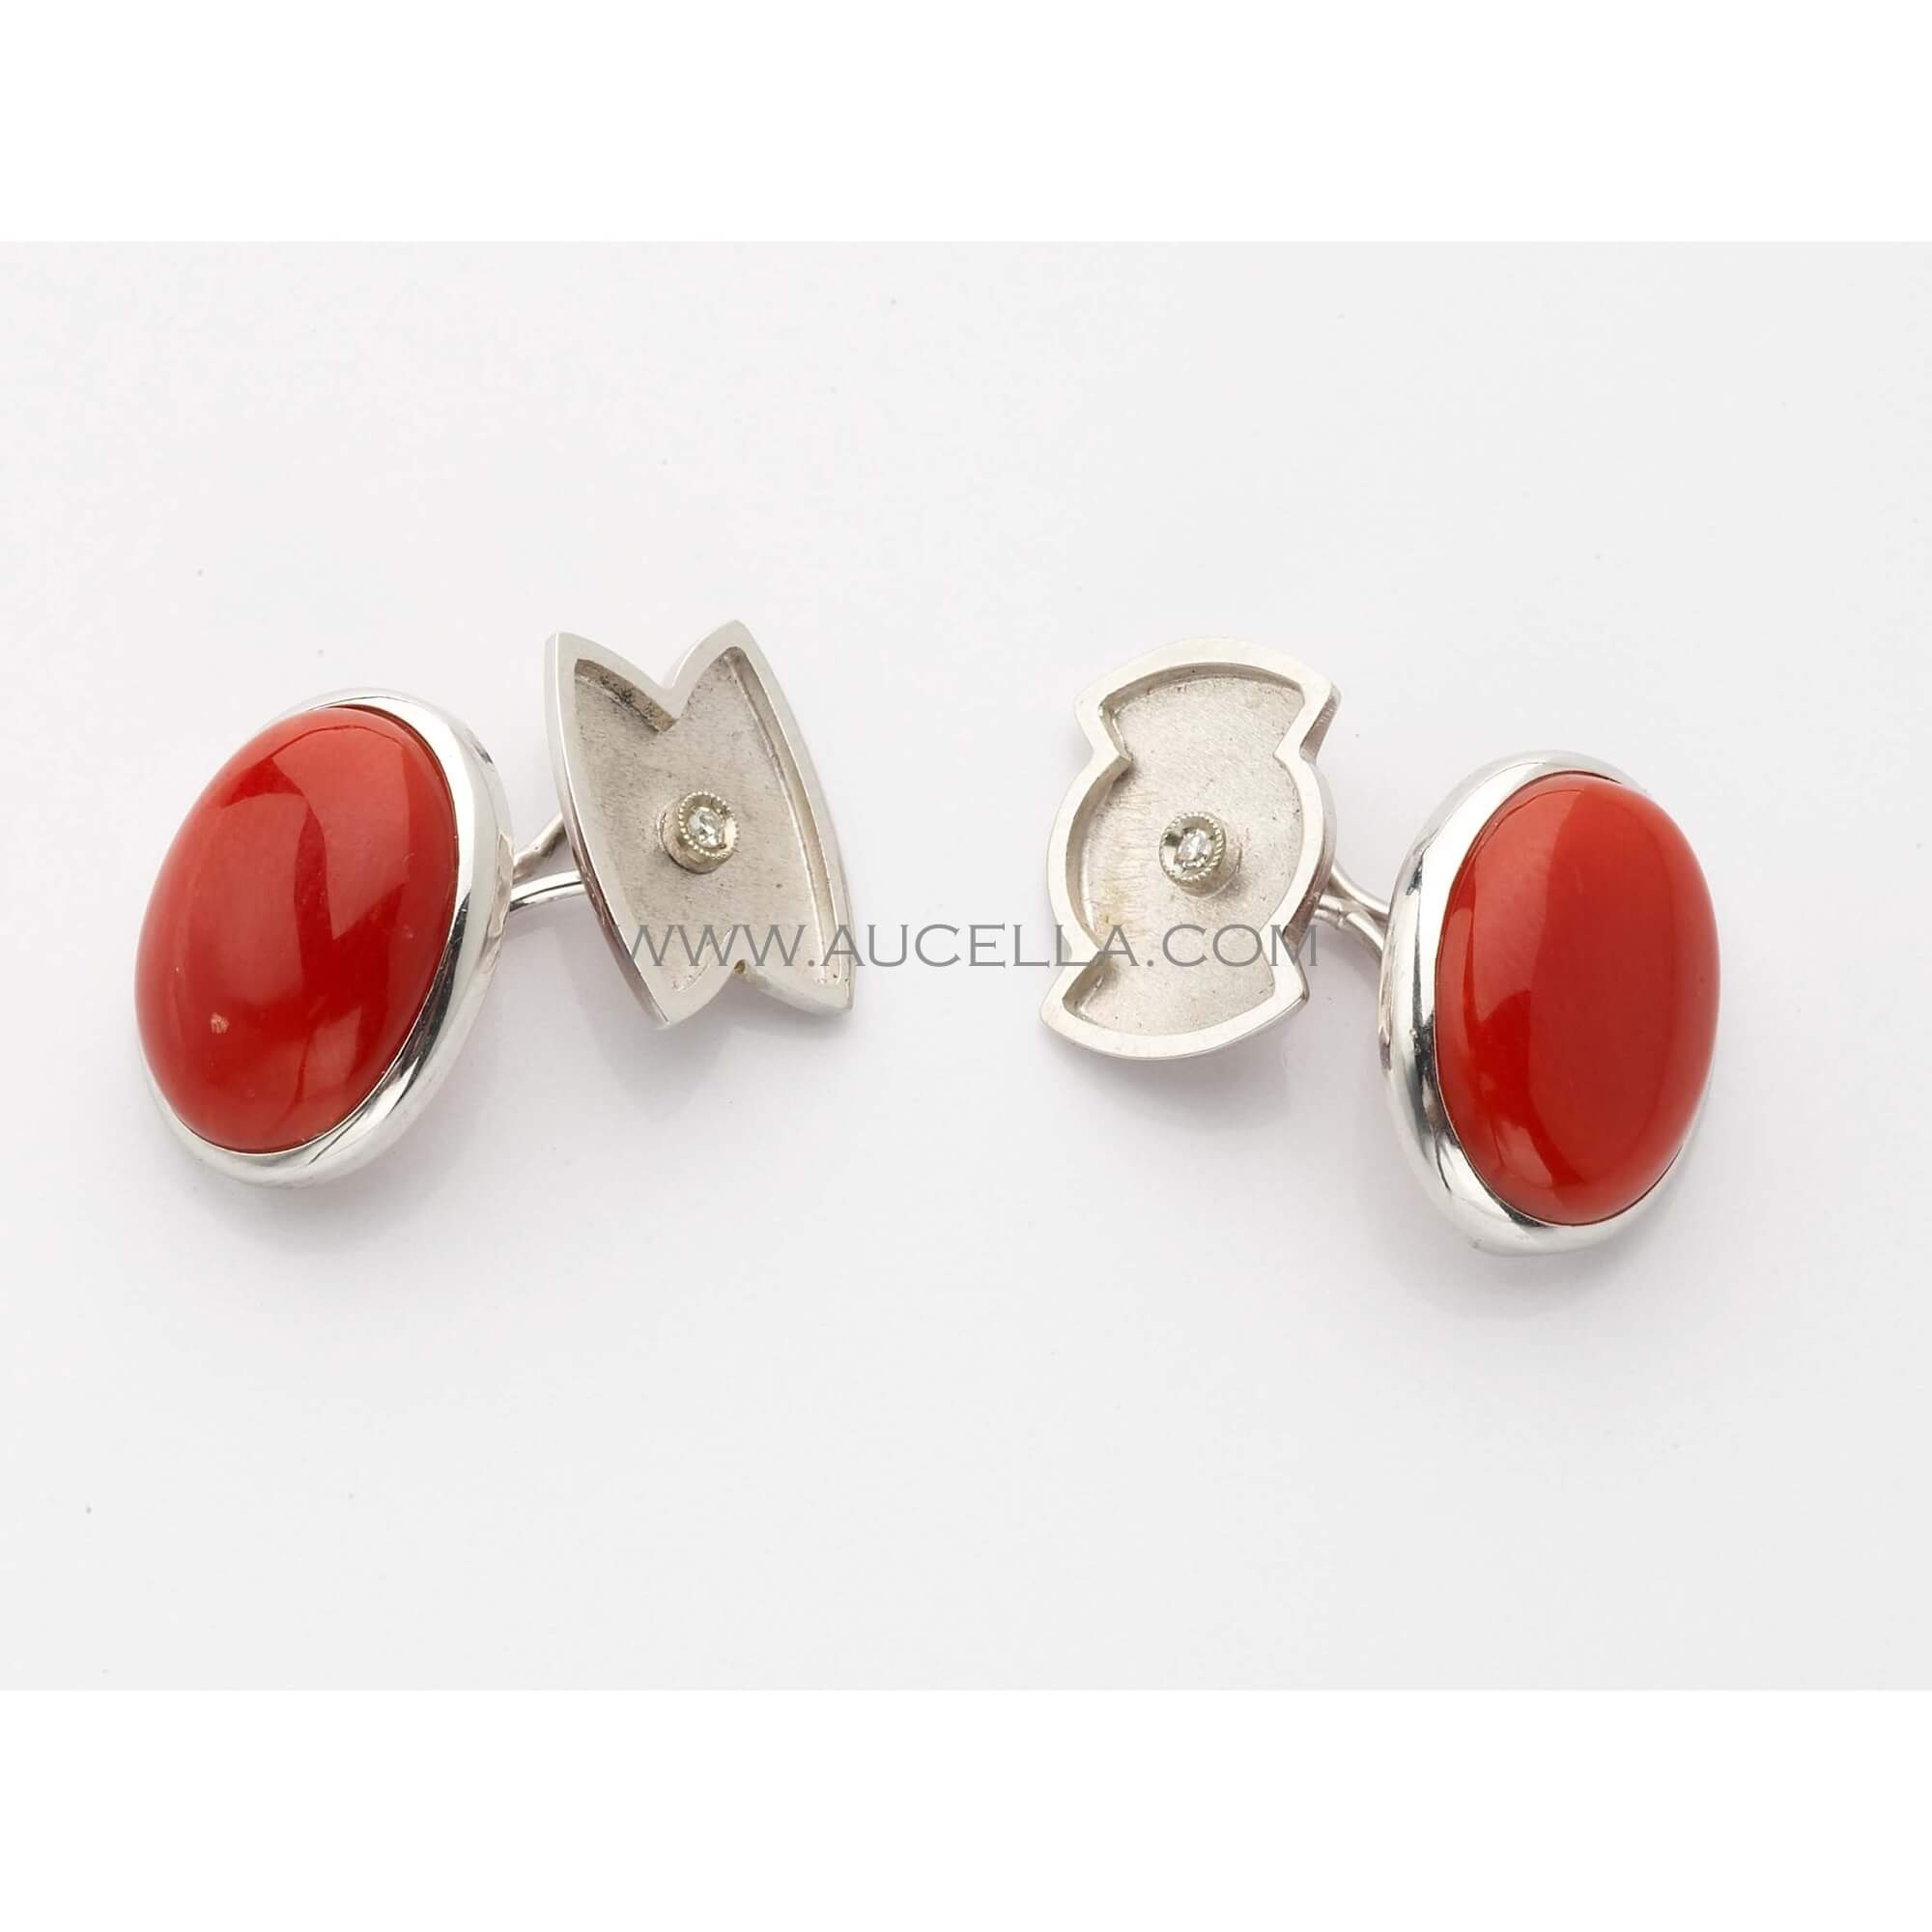 Cufflinks set in gold with red natural coral